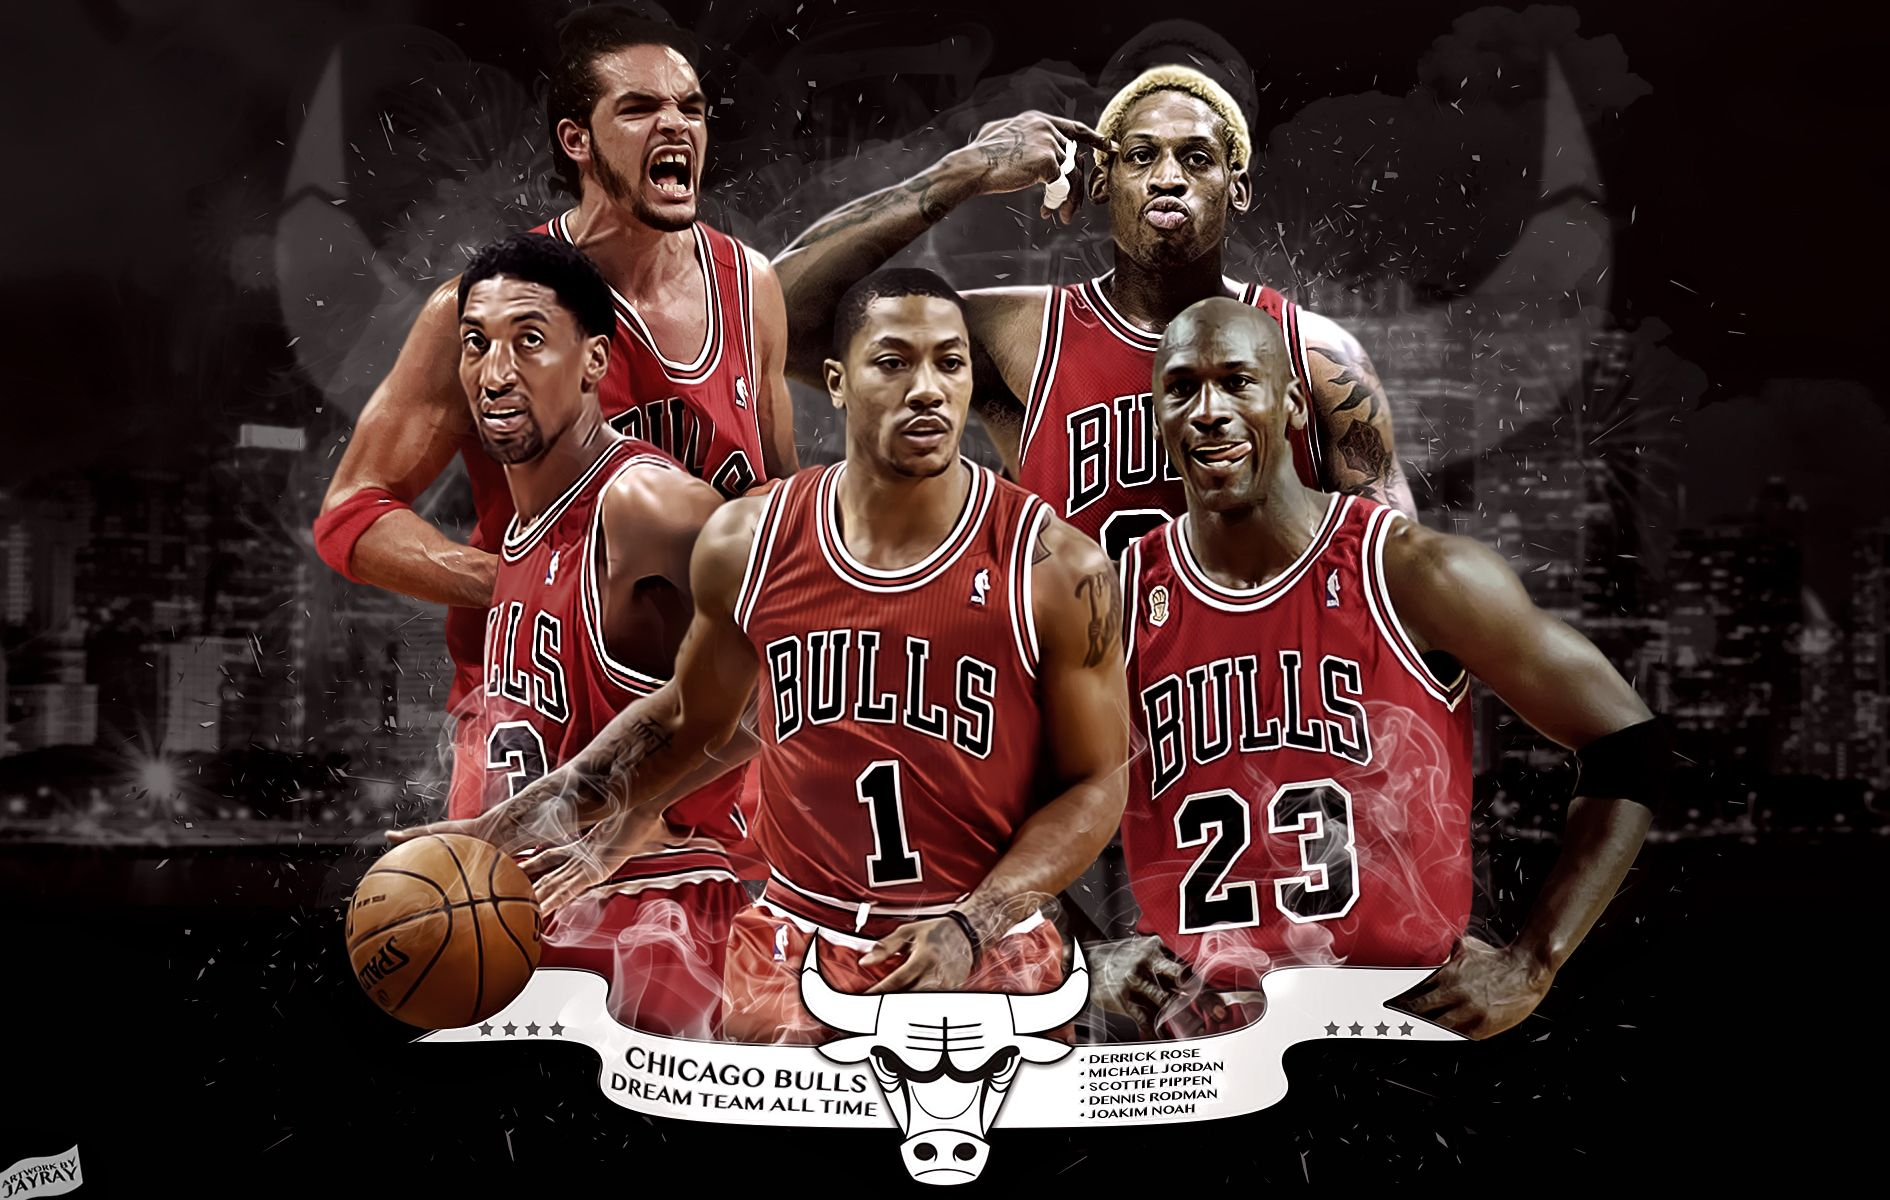 Dream Come True : Chicago Bulls (With Images)